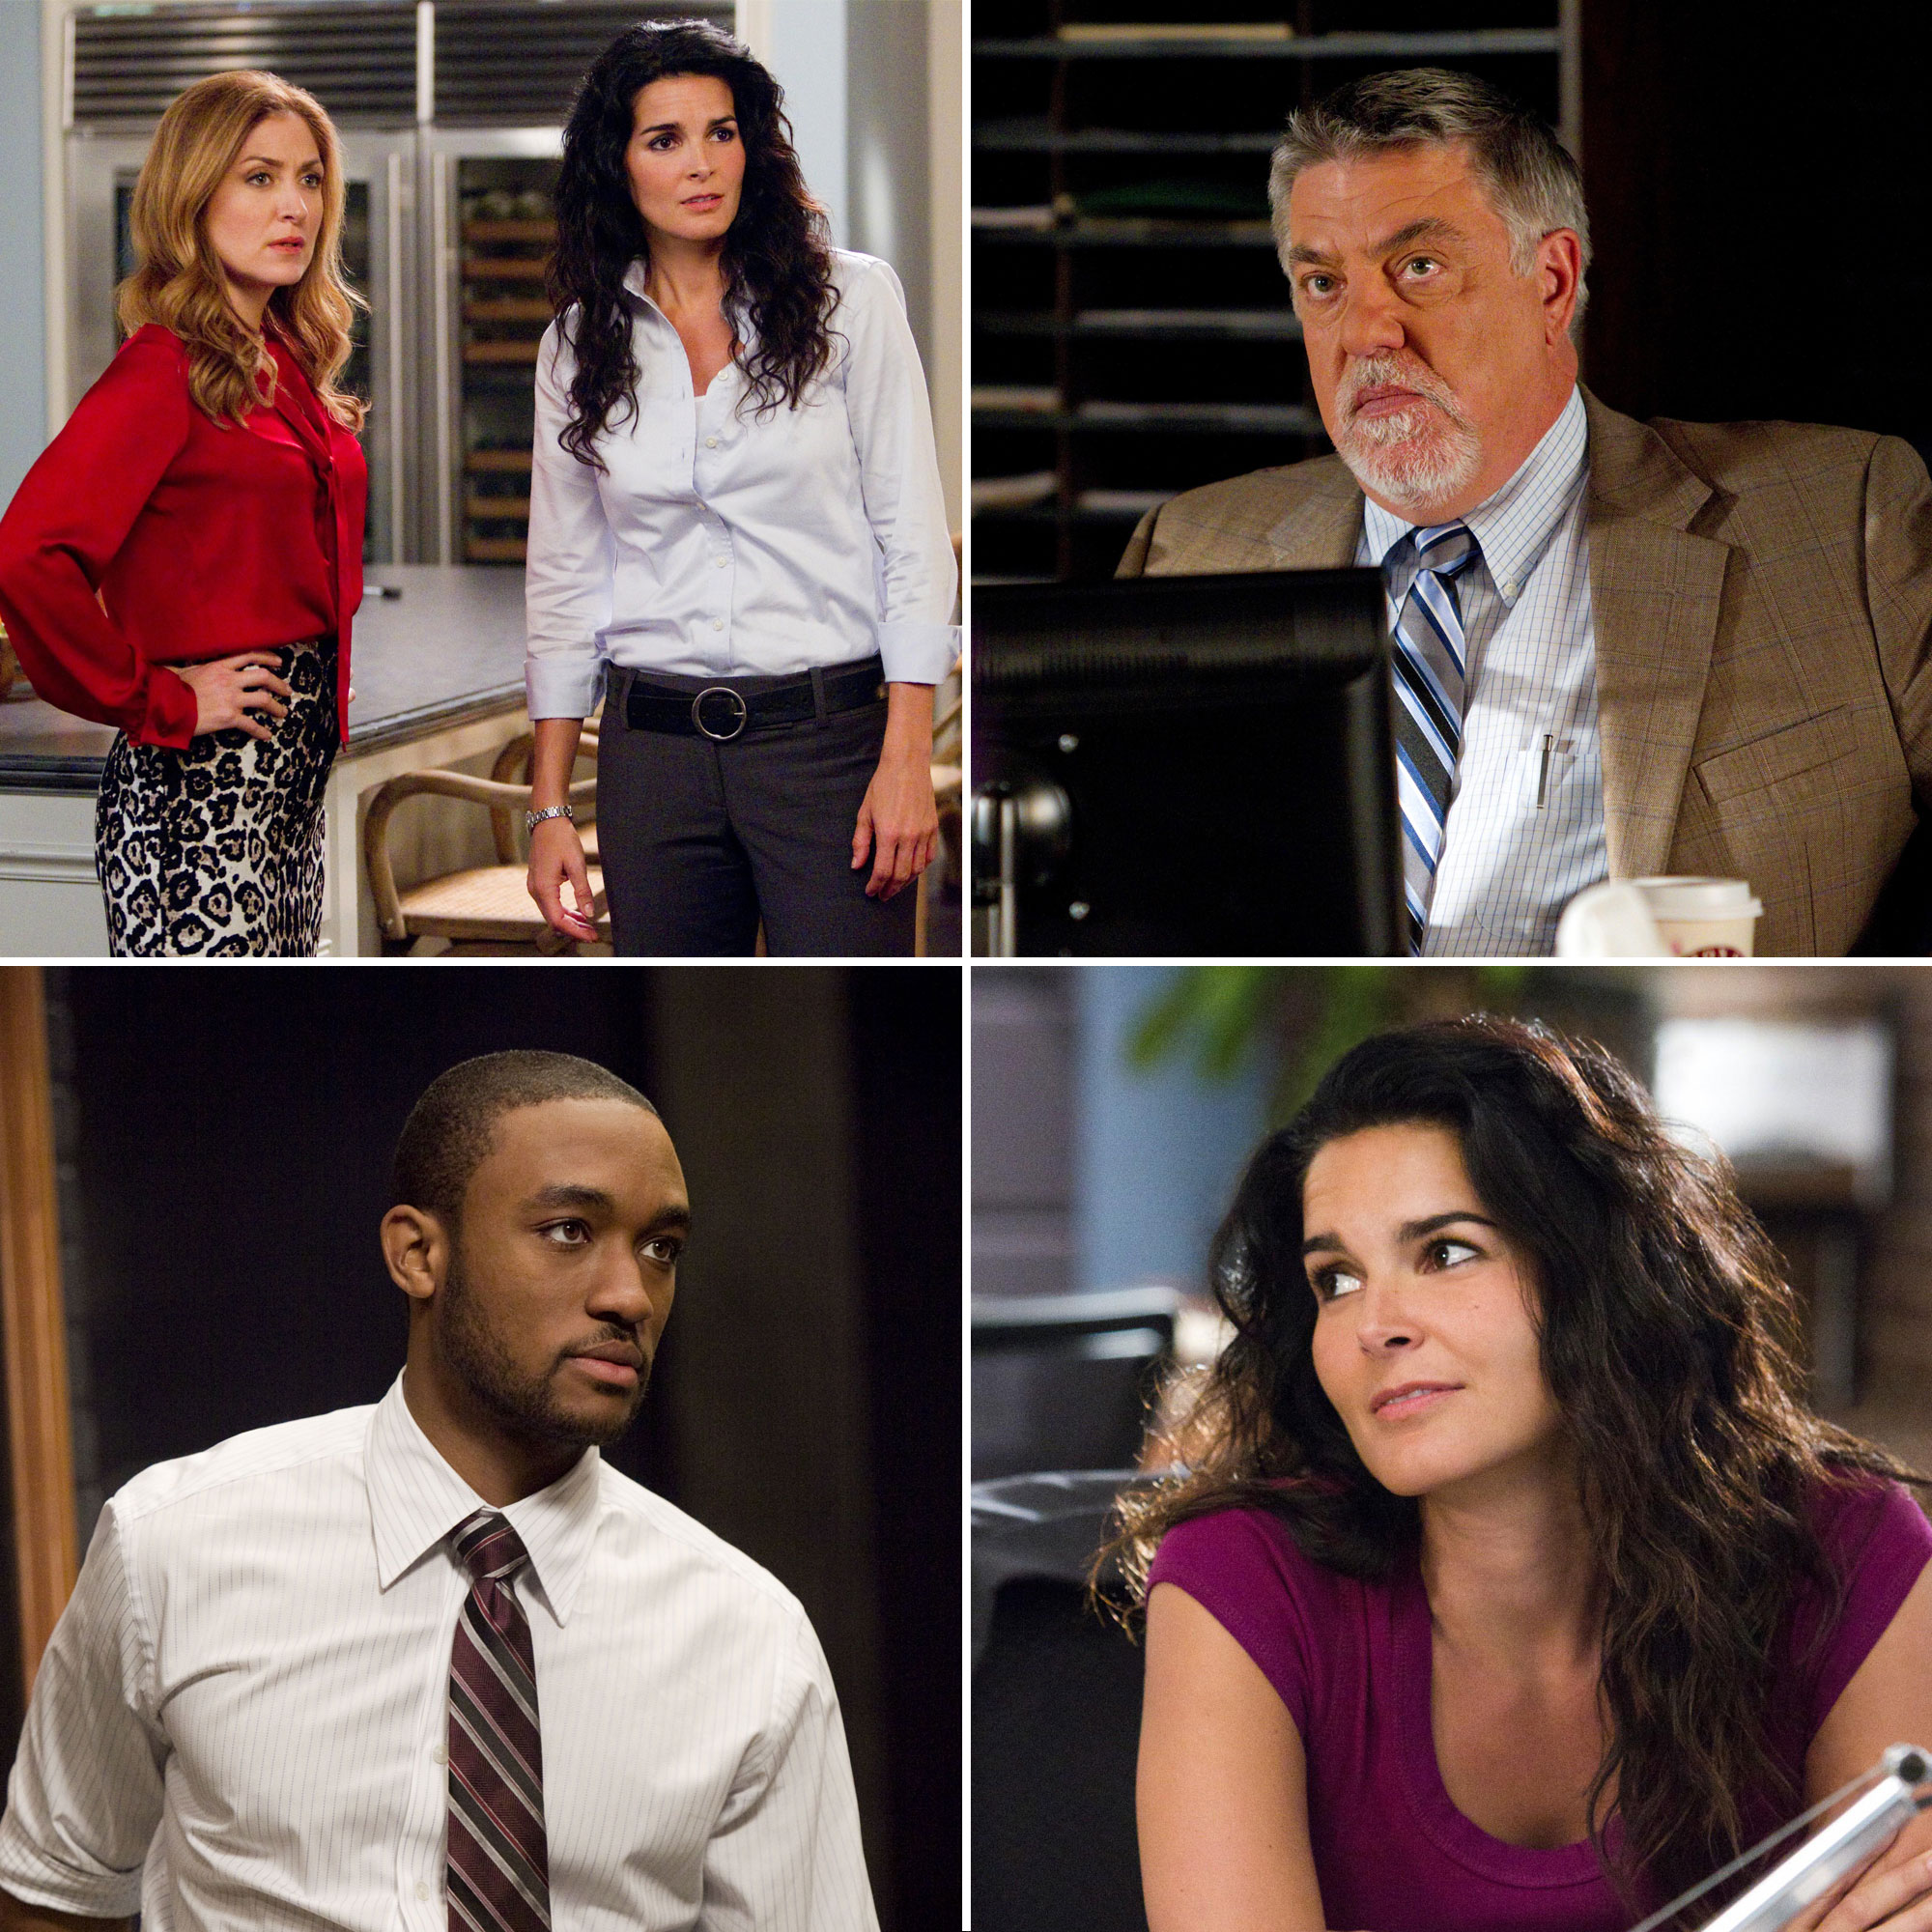 Rizzoli & Isles' Cast: Where Are They Now?